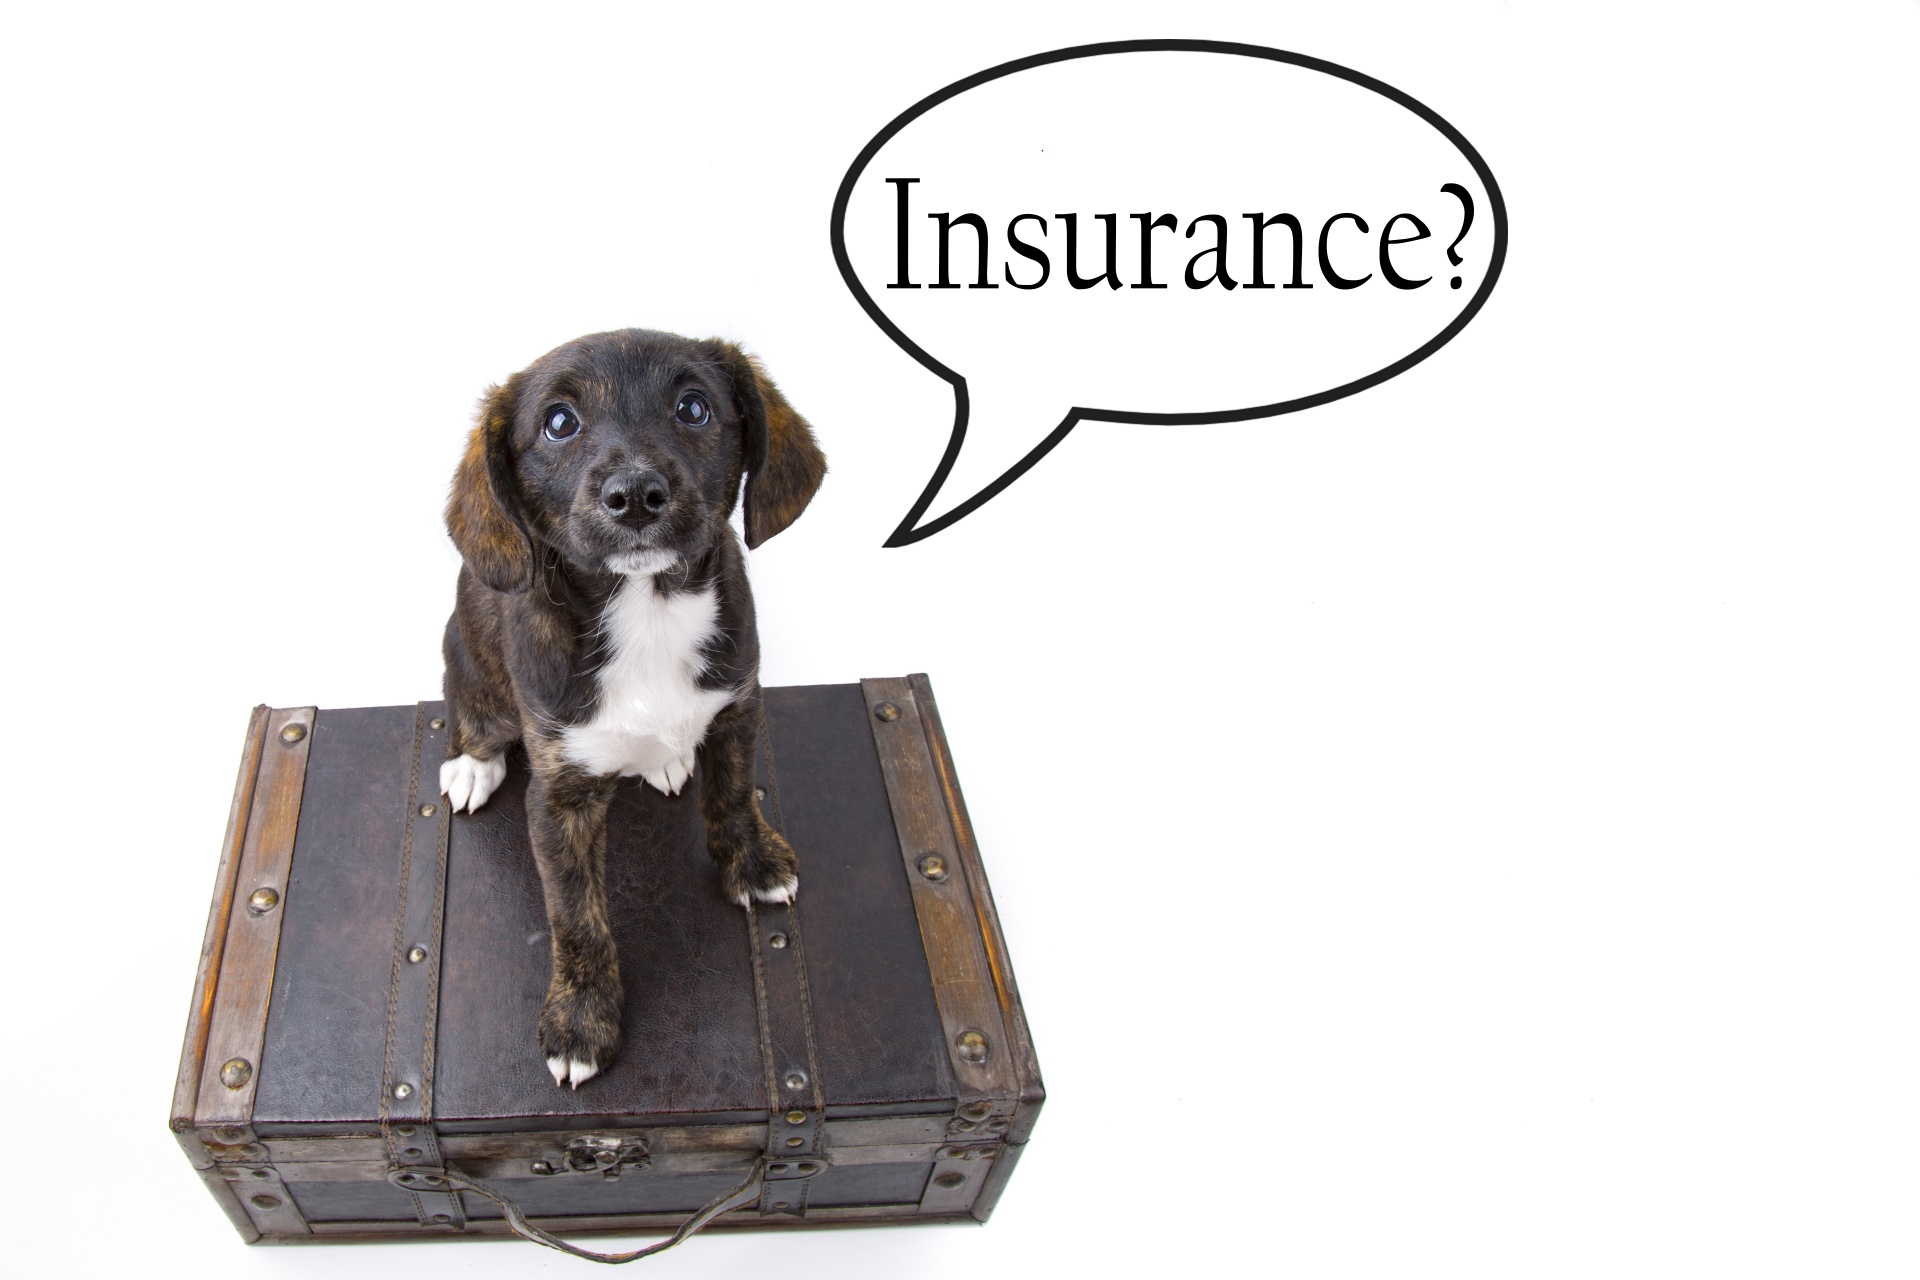 """Dog with thought bubble saying """"Insurance?"""""""